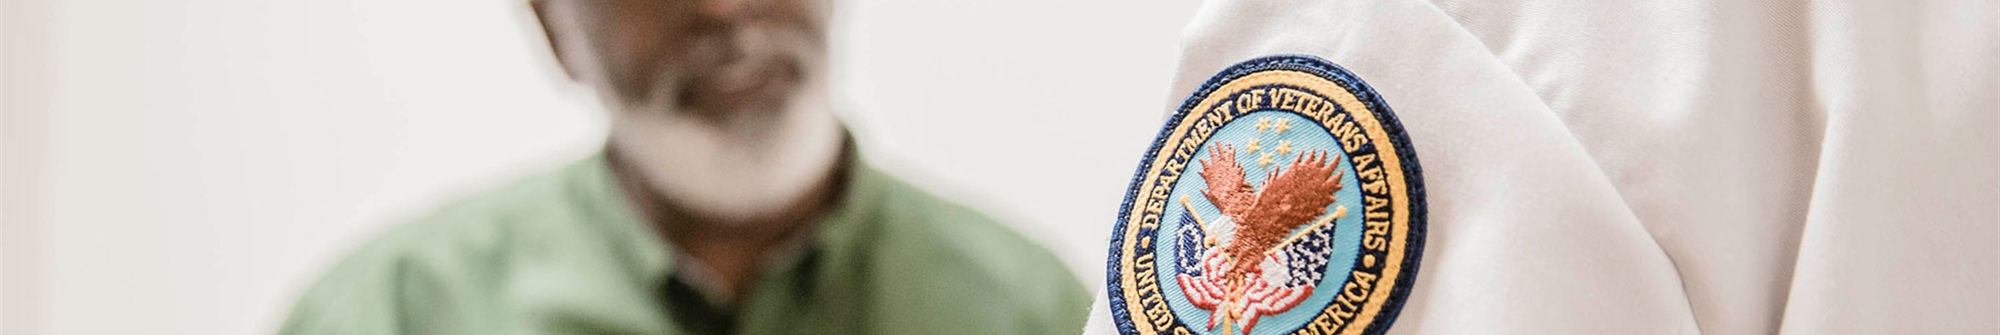 Suffolk County Veterans Services Agency > Home